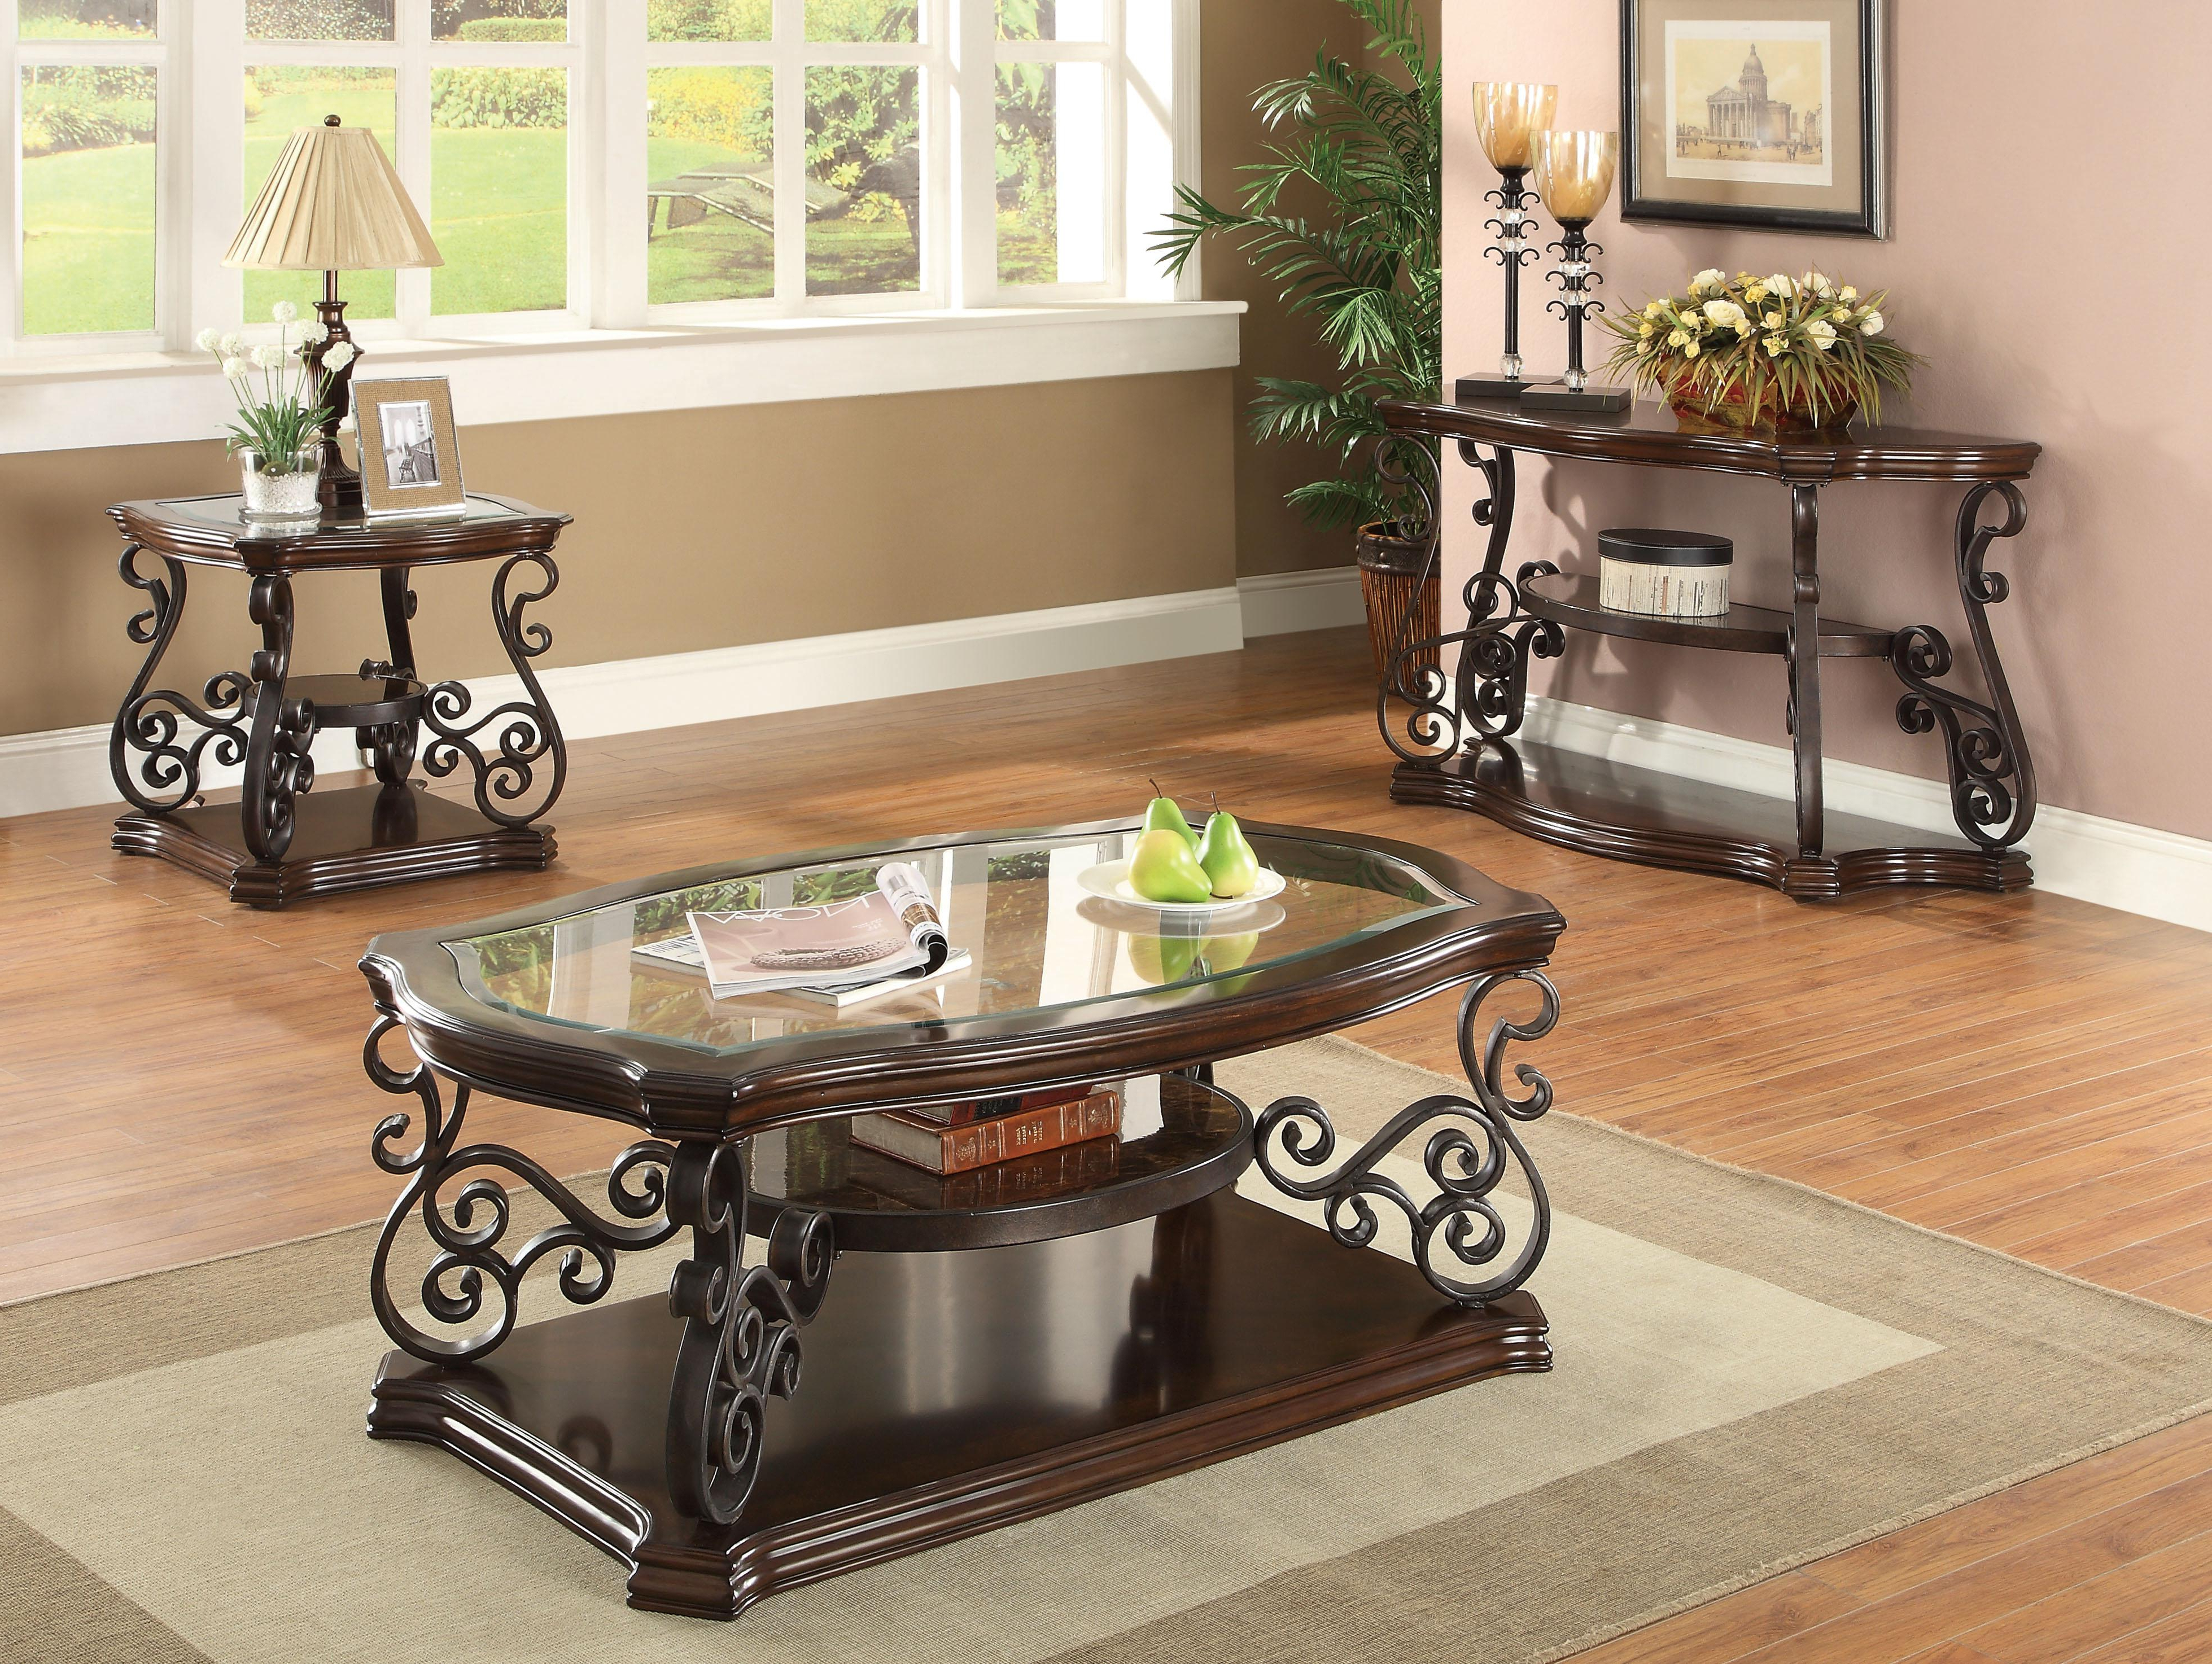 Northeast Factory Pertaining To Most Popular Traditional Coffee Tables (View 9 of 20)